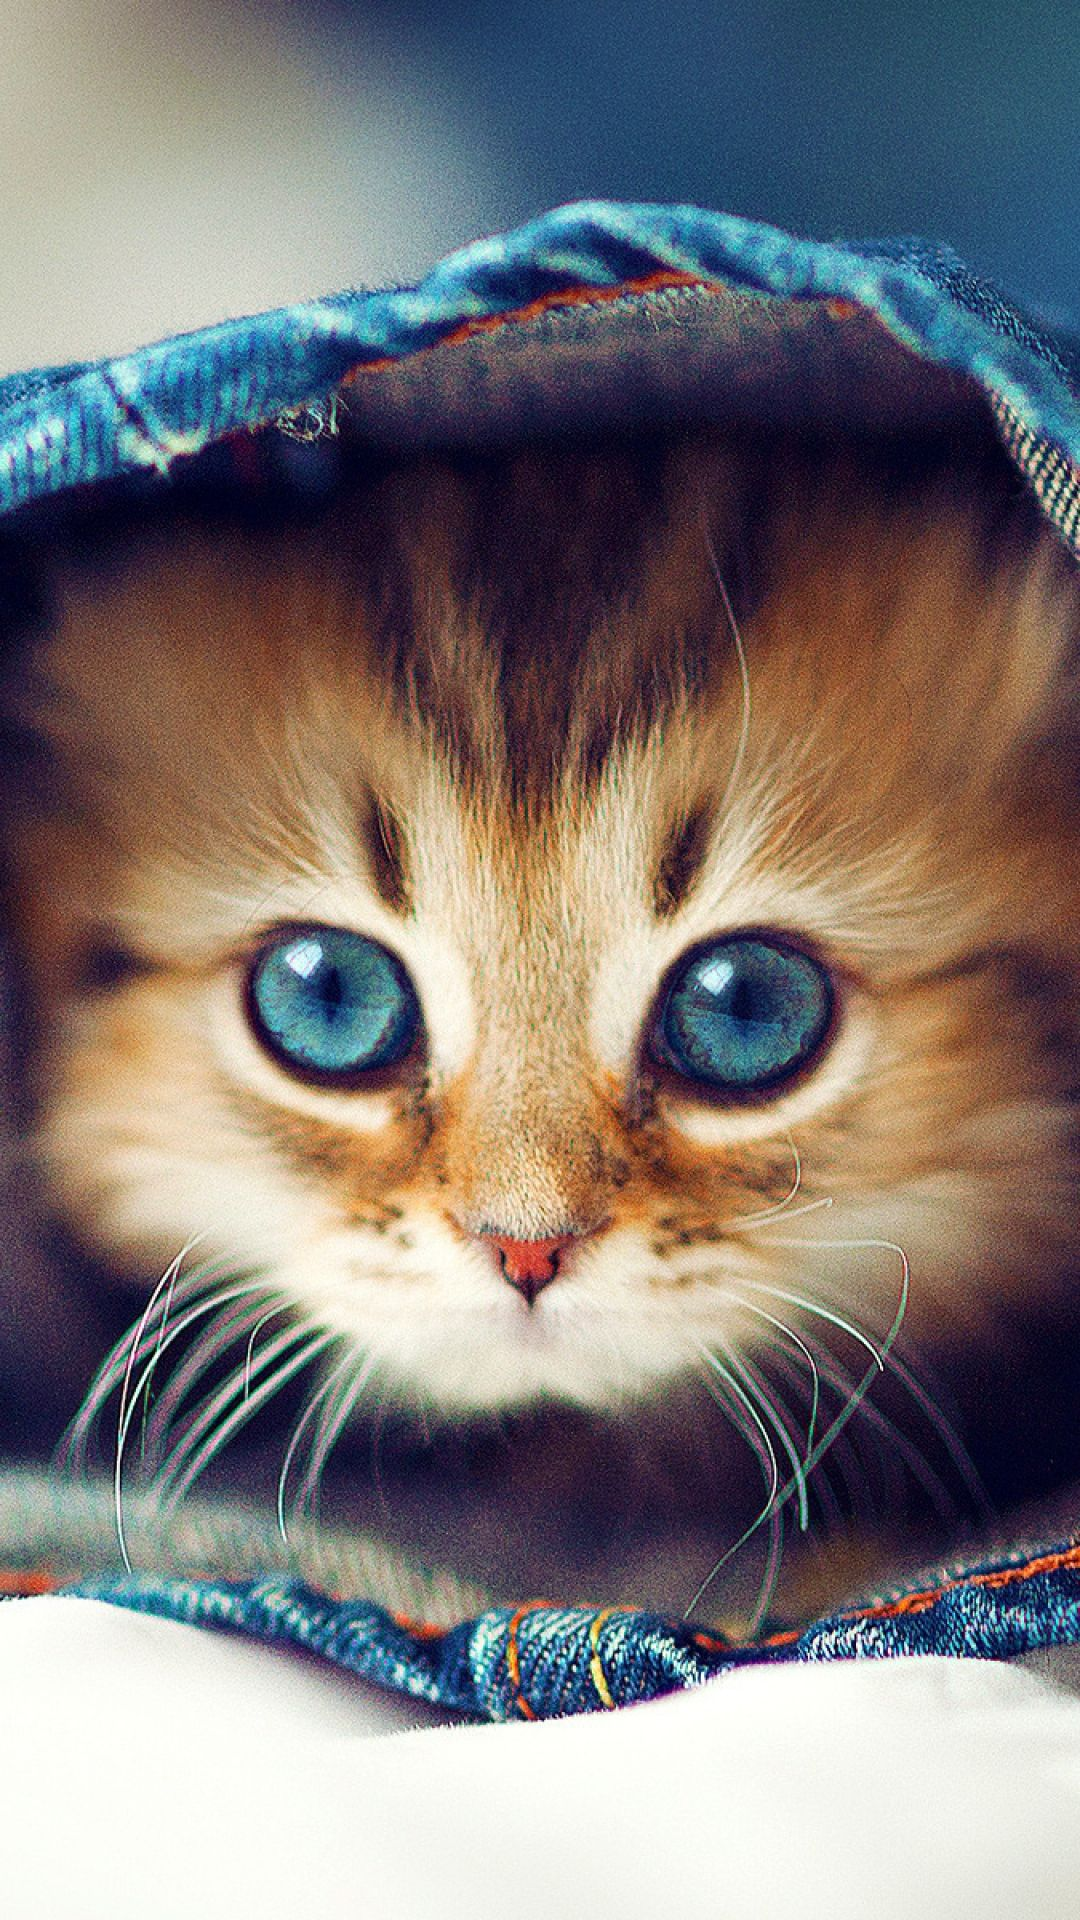 Kitty jeans face furry hide moixets pinterest kitty and face